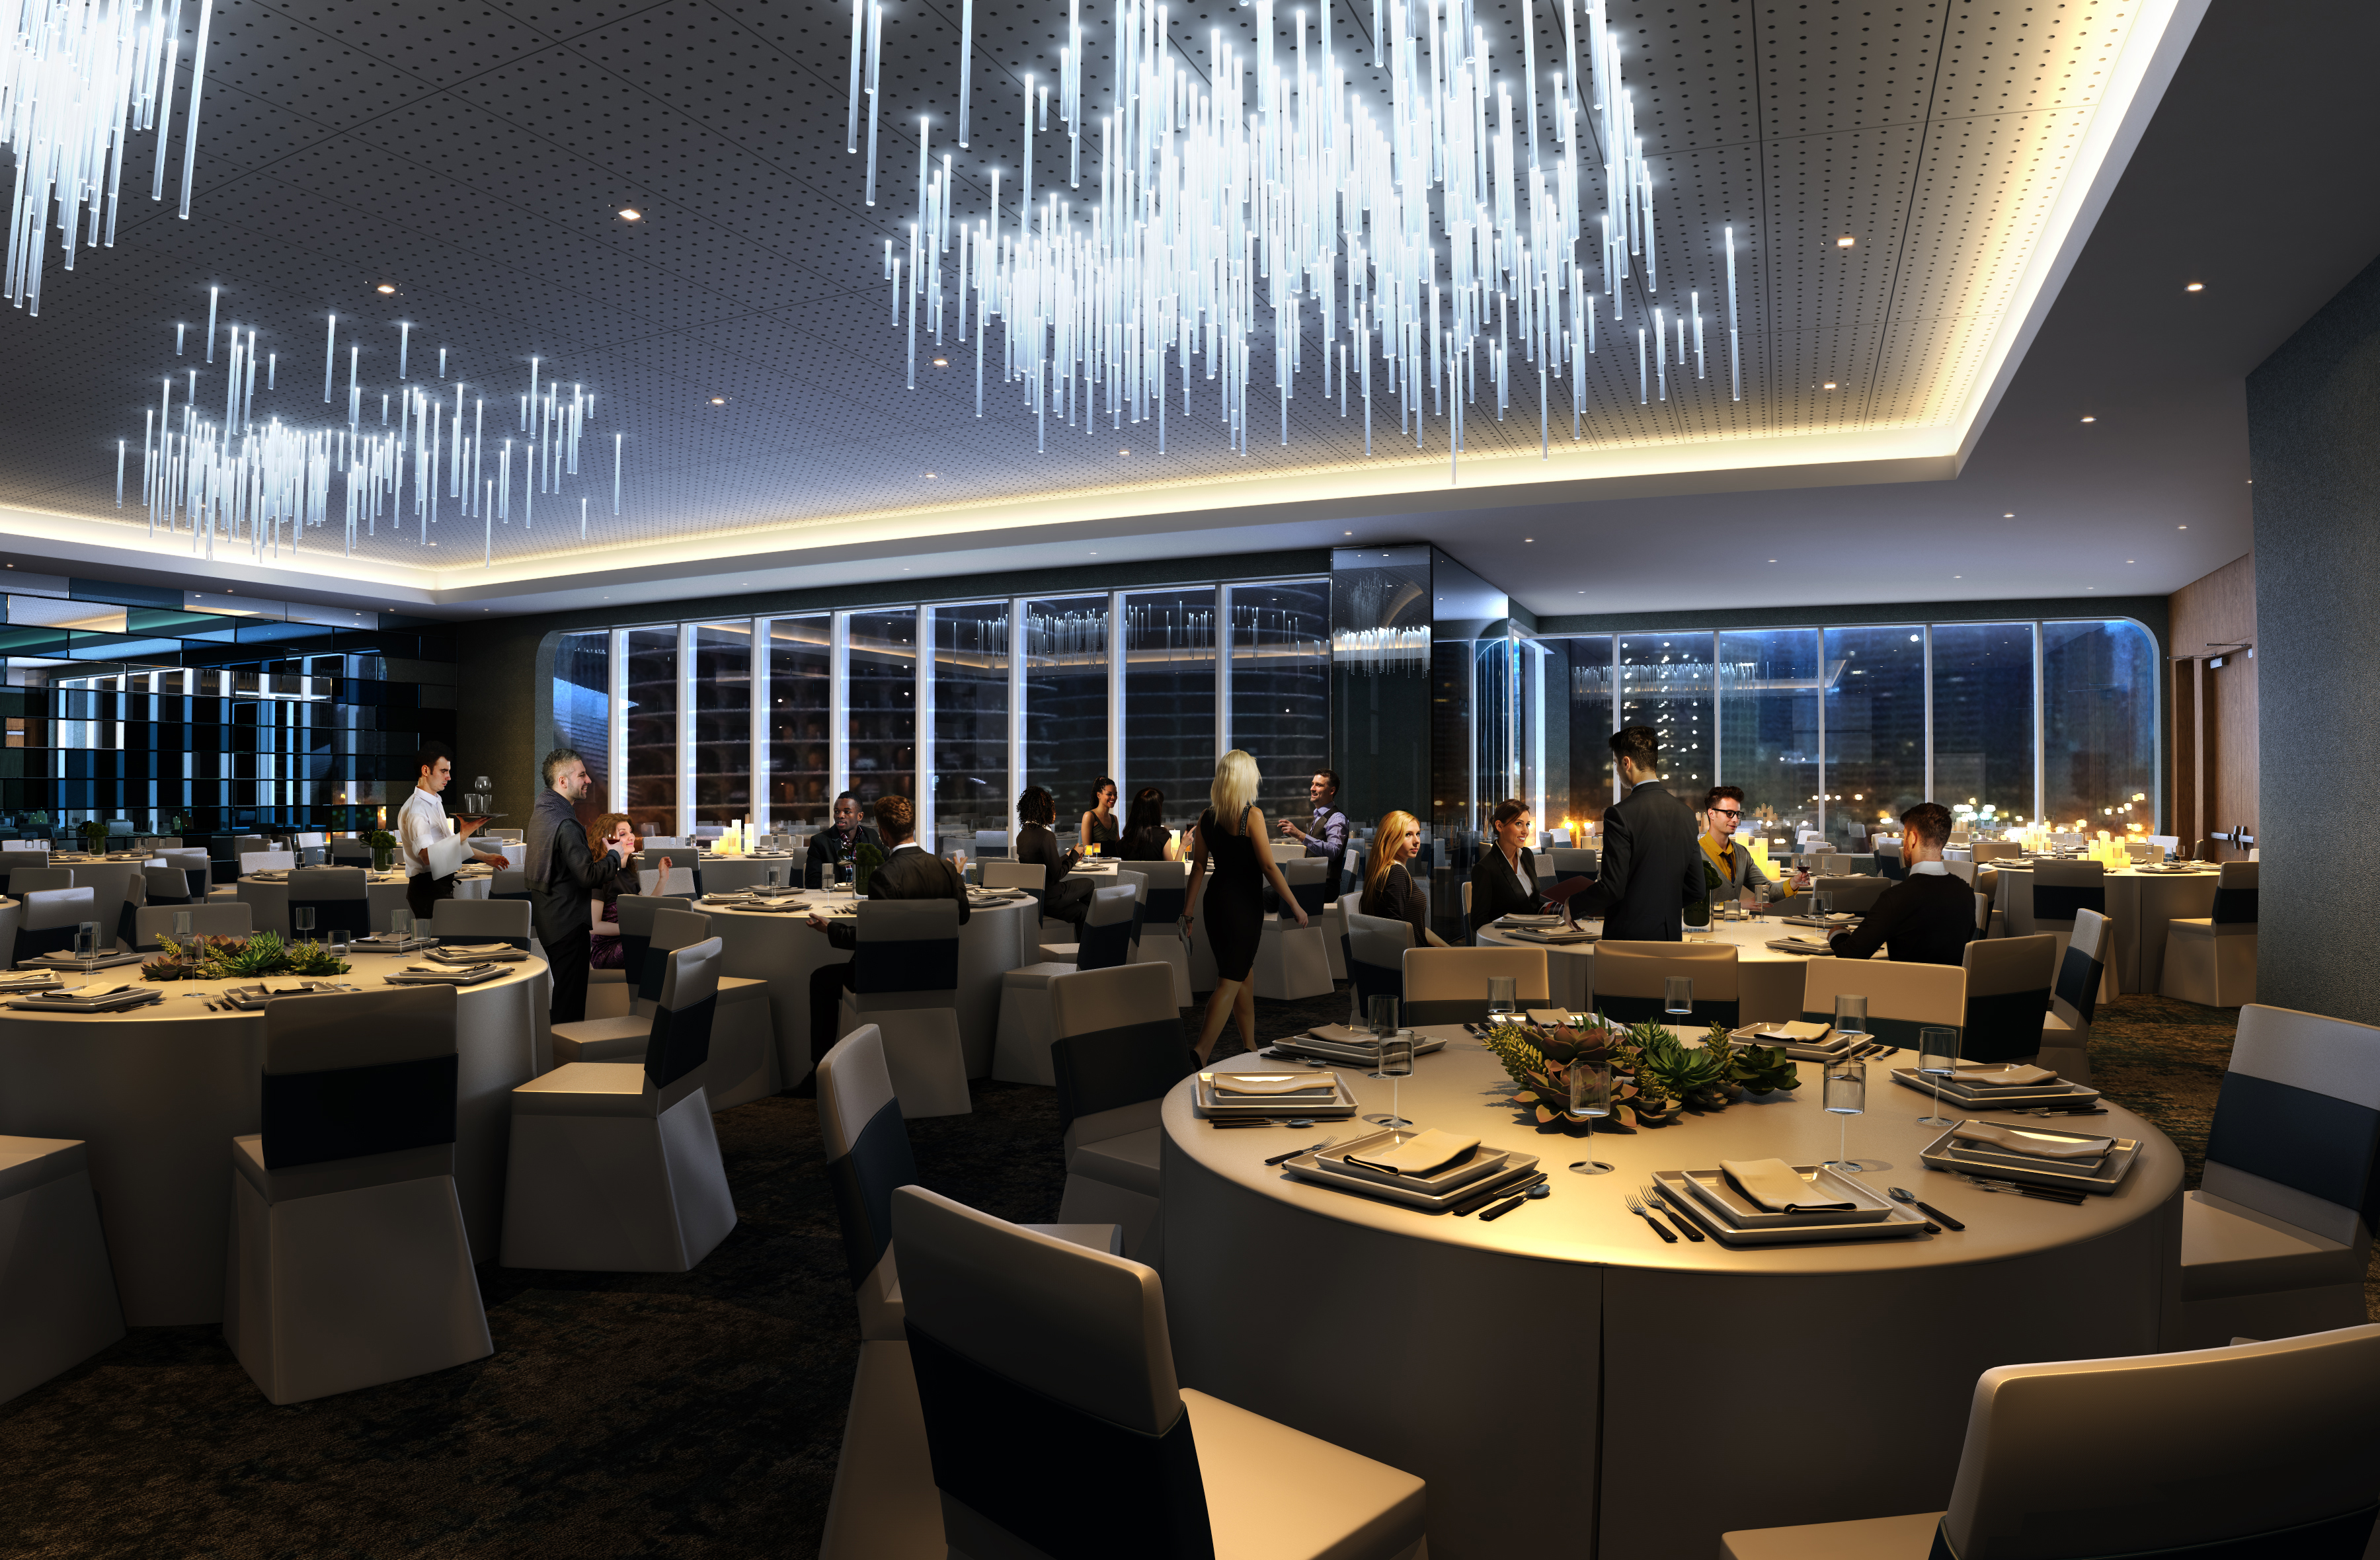 Rendering of Renaissance Hotel's Looking Glass Ballroom. Anticipated opening Spring 2016.